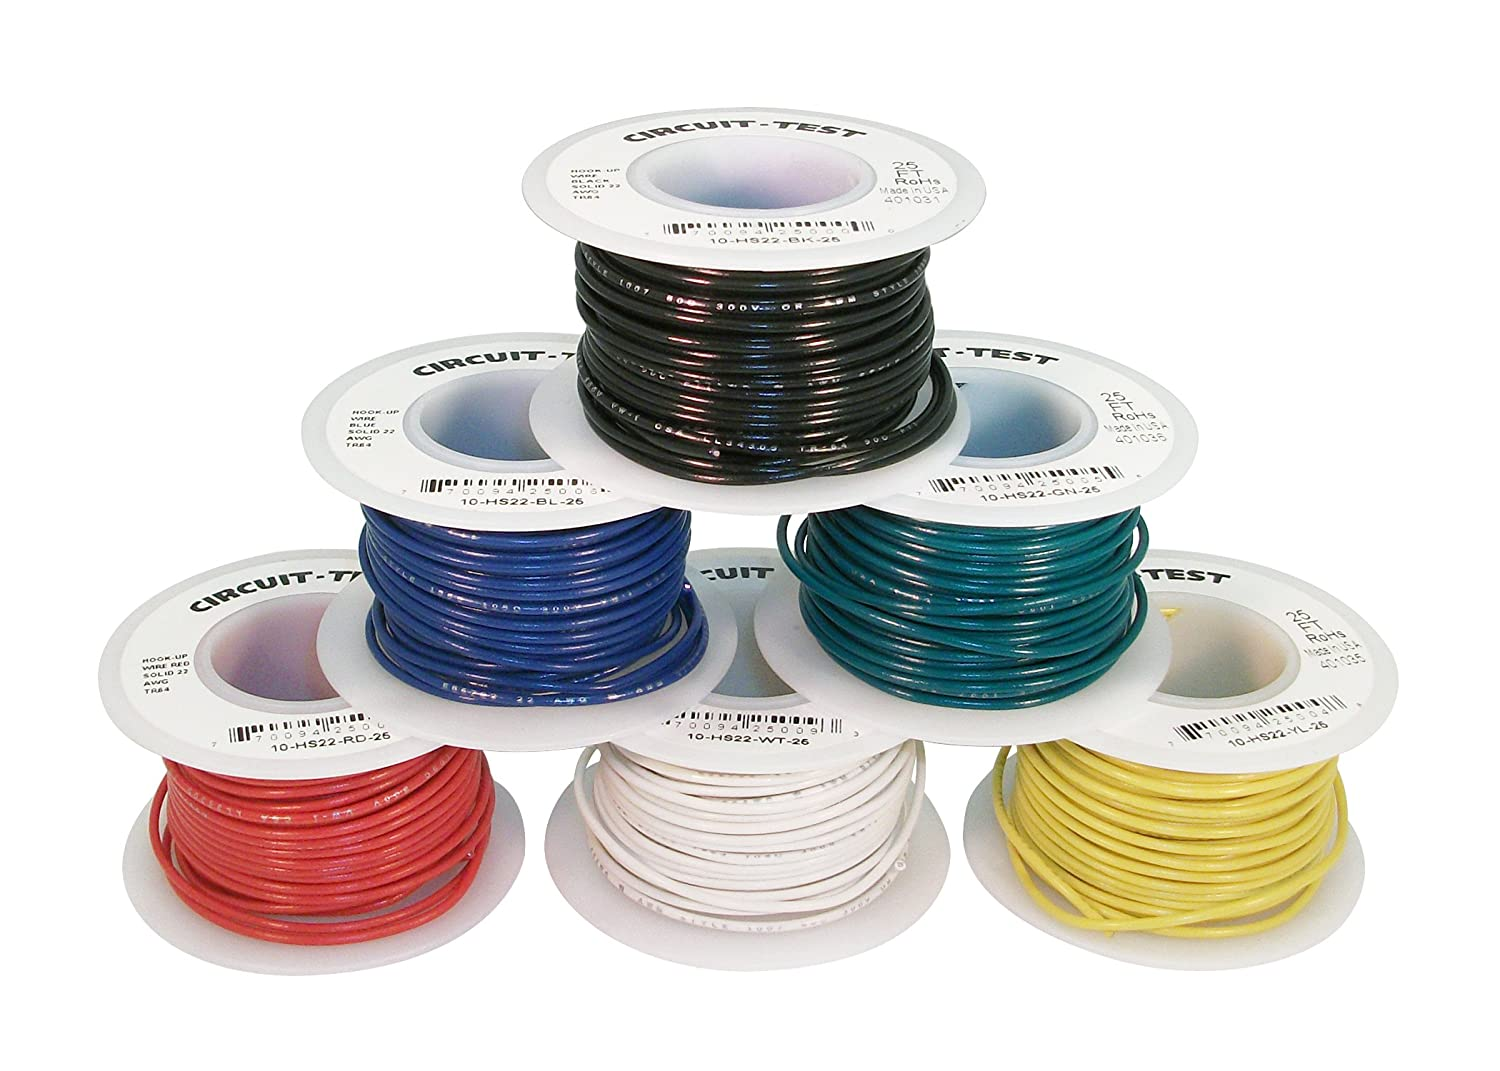 Amazon.com: CIRCUIT-TEST 22AWG Solid Hook Up Wire Kit - 6 x 25 Foot ...